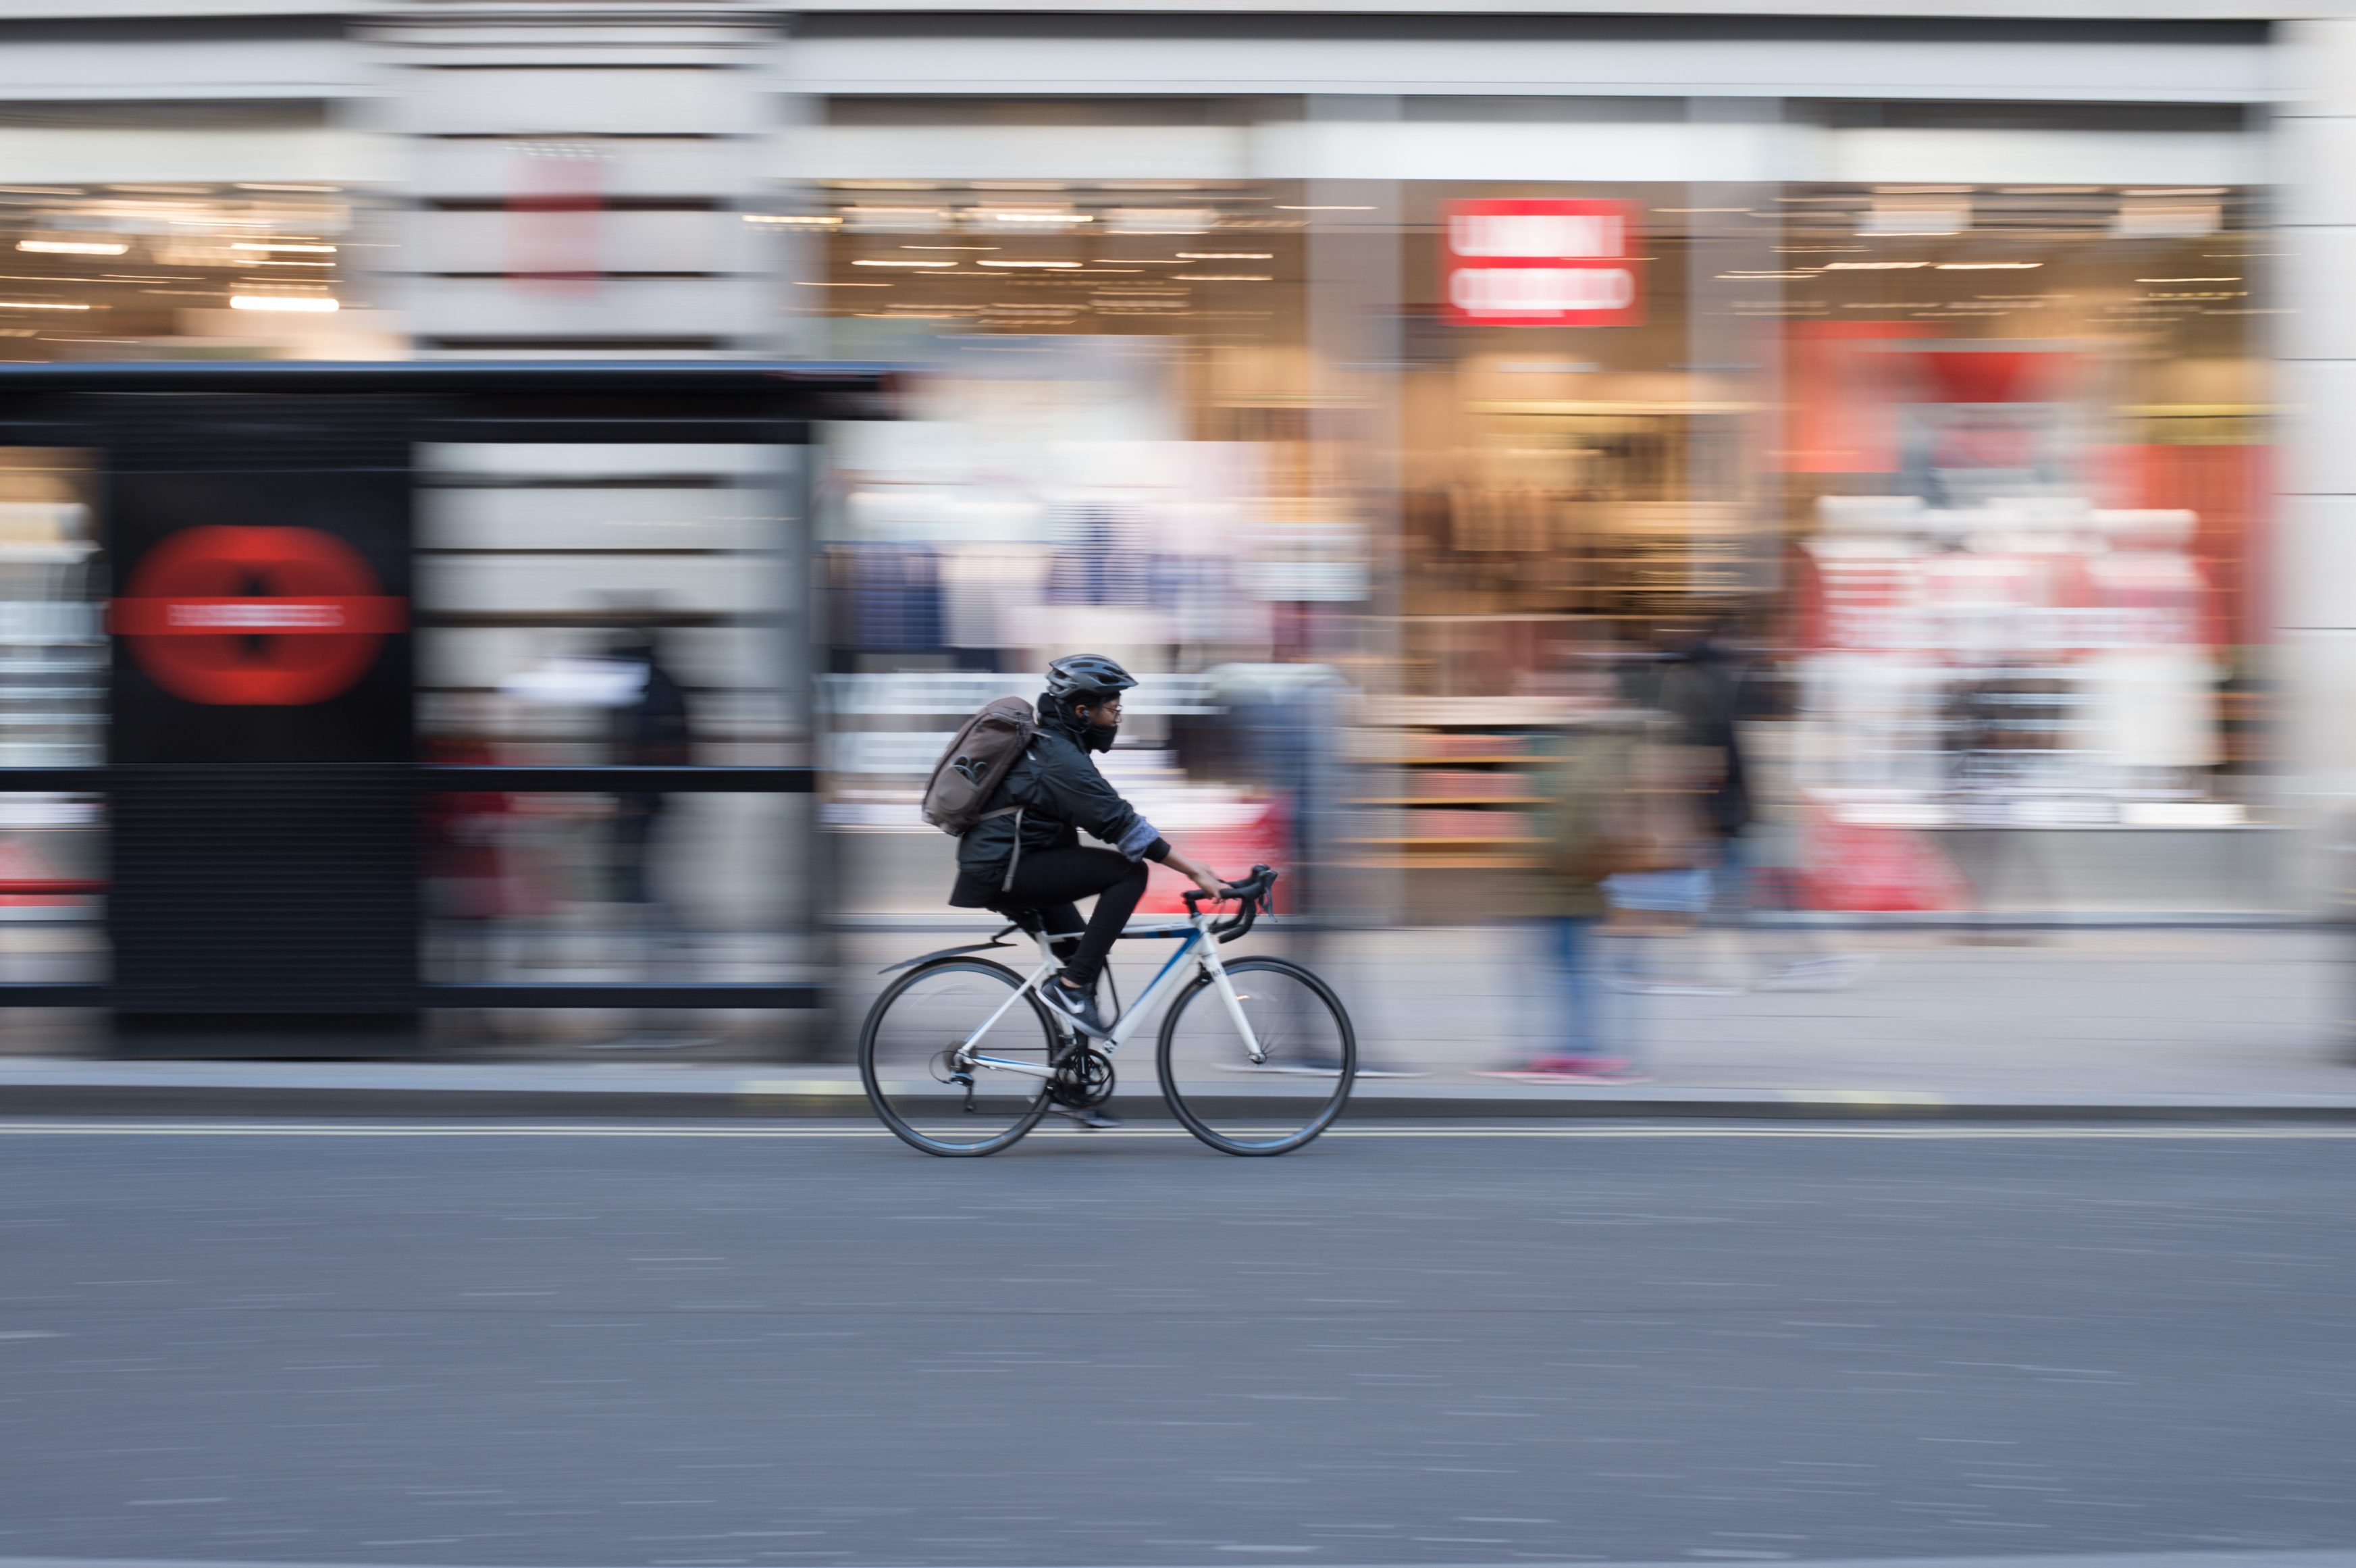 cycling to work in busy street